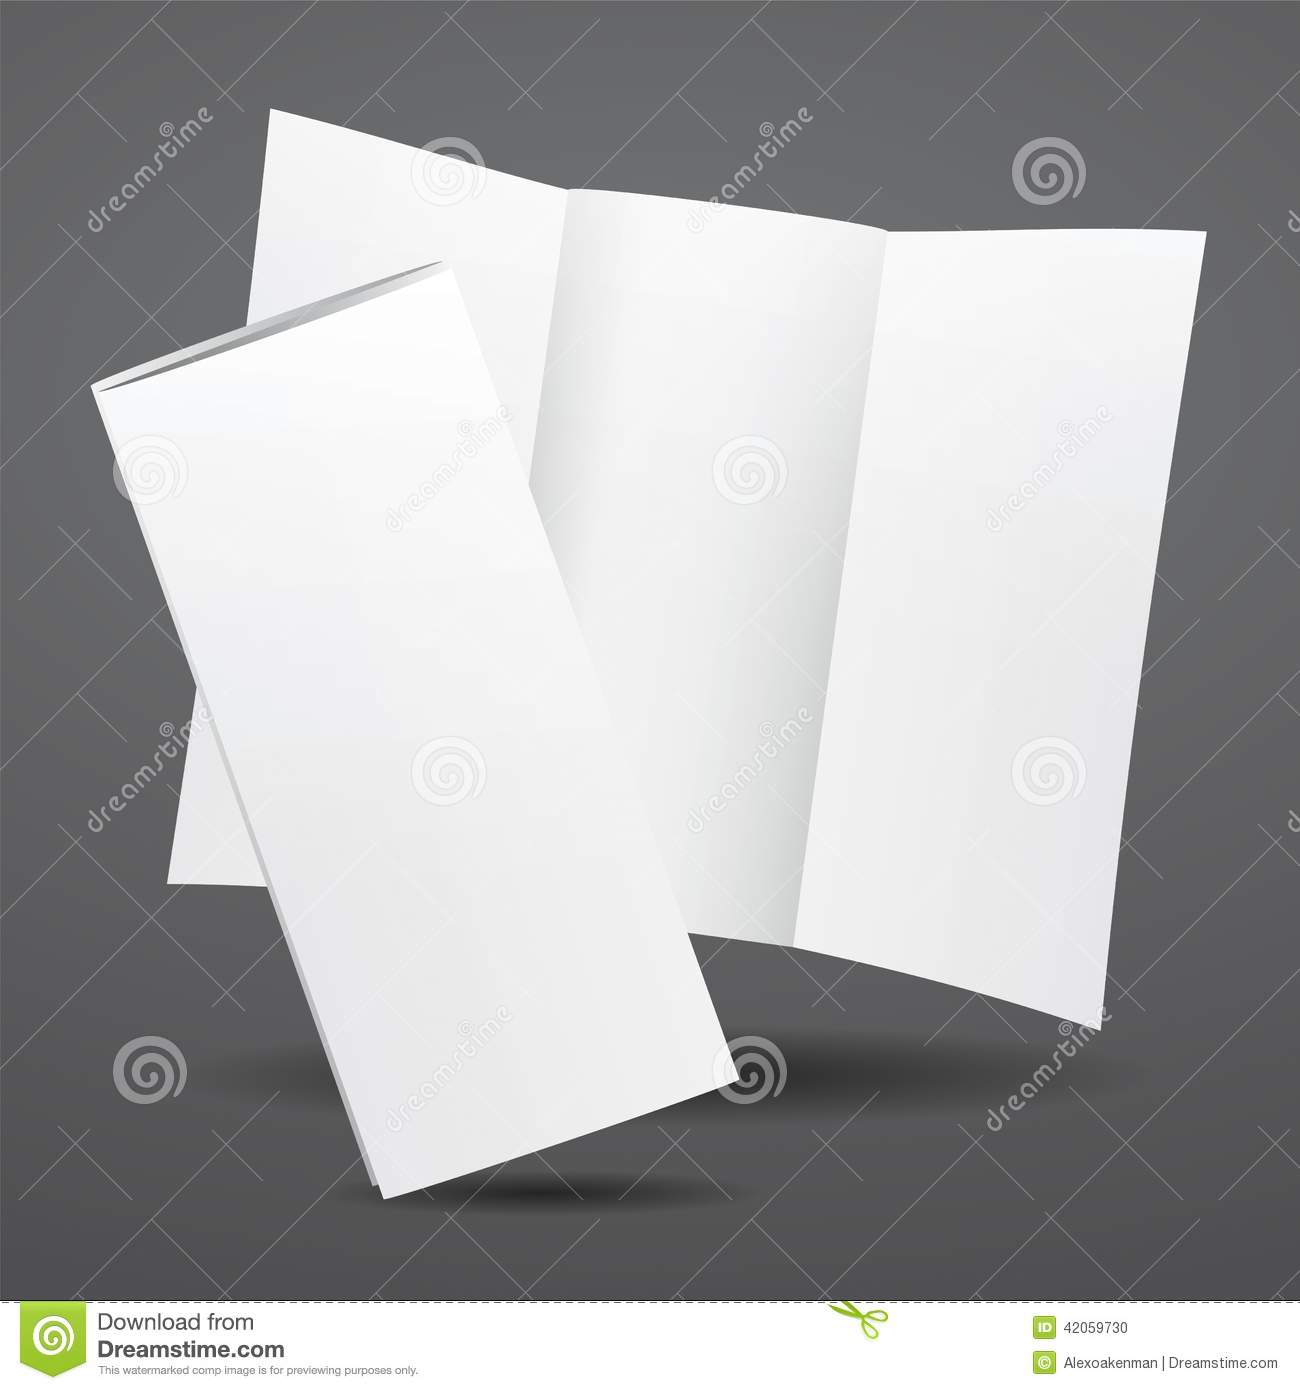 Blank Vector White Tri Fold Brochure Template  Stock Vector     Download Blank Vector White Tri Fold Brochure Template  Stock Vector    Illustration of branding